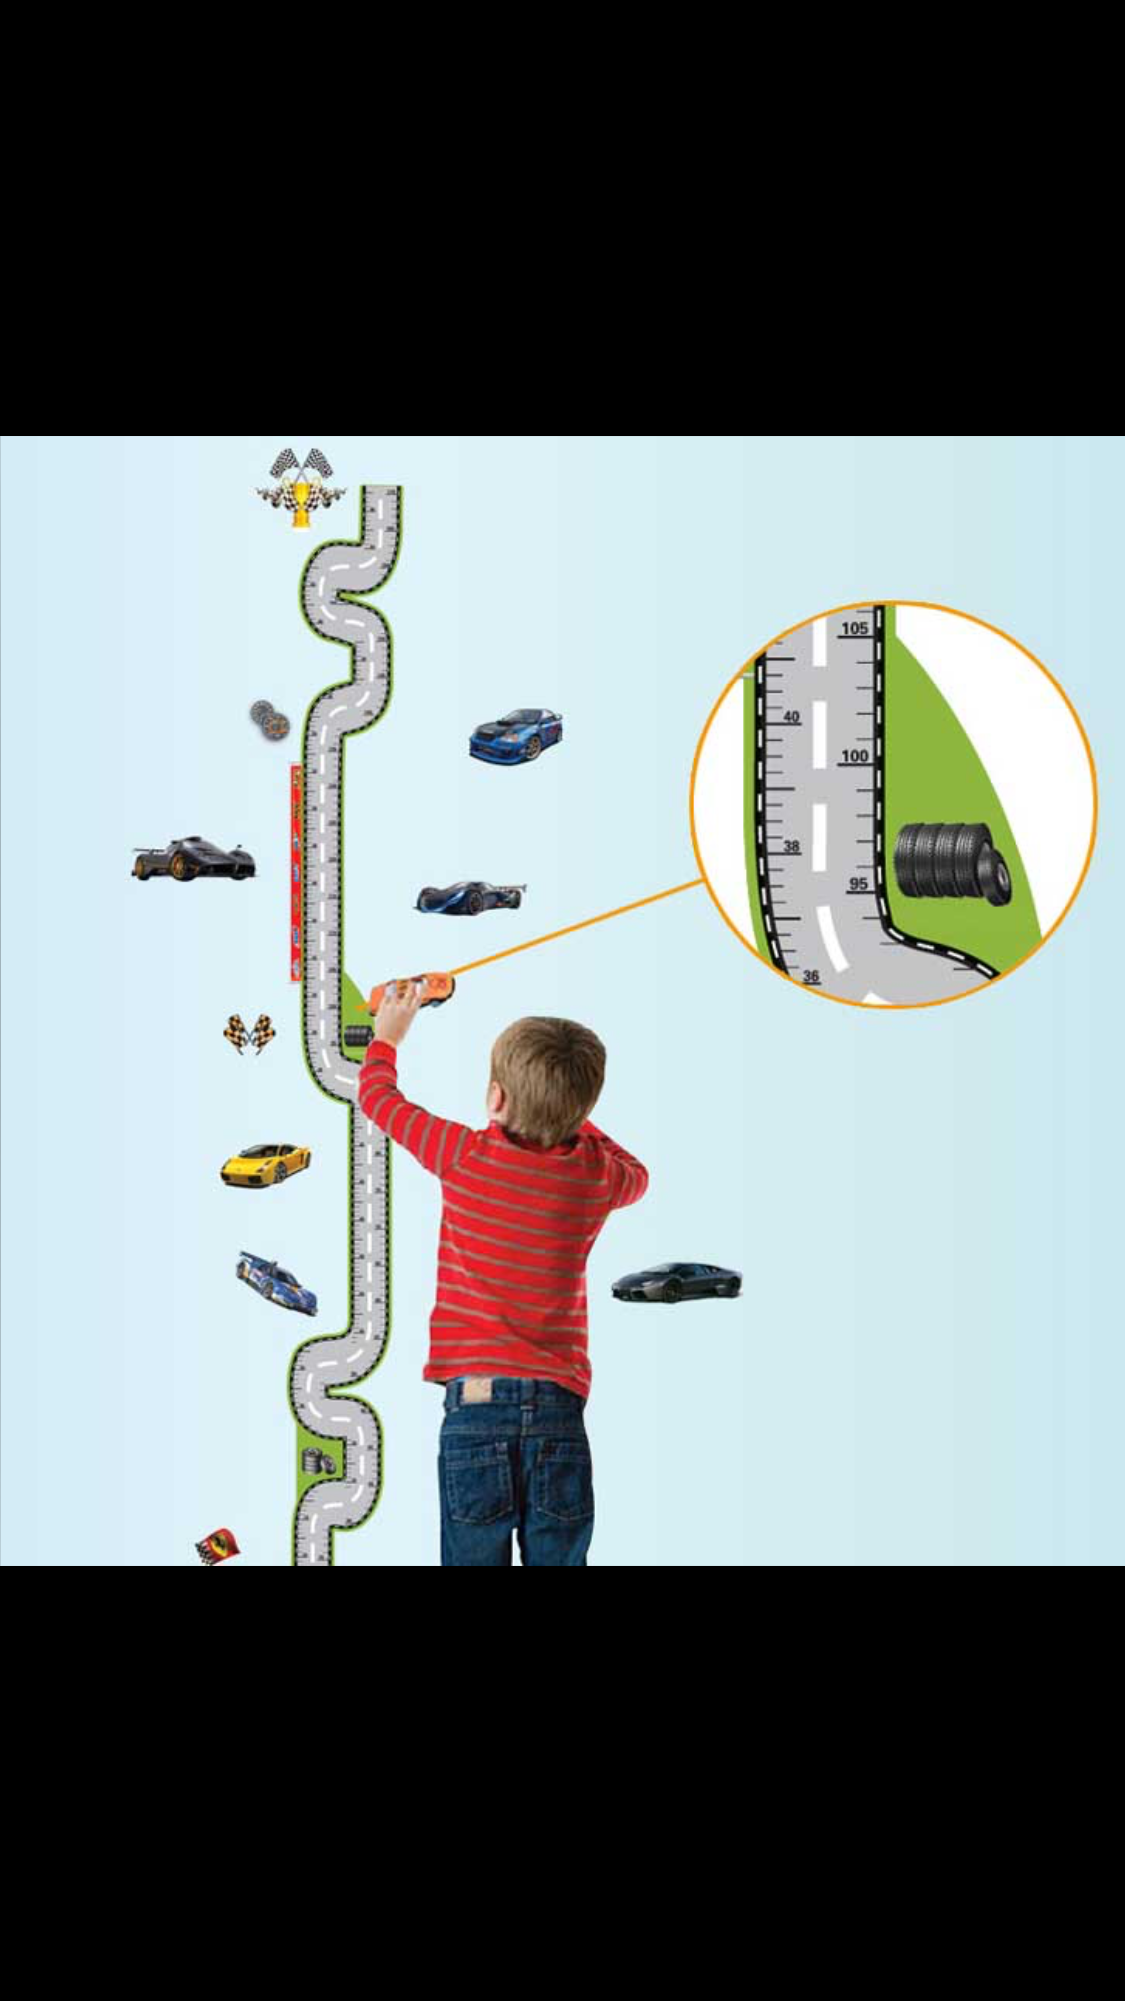 Pin by suzi eaton on sunday school faith grows here pinterest kappier race cars with tracks height measurement growth chart removable wall decals geenschuldenfo Gallery